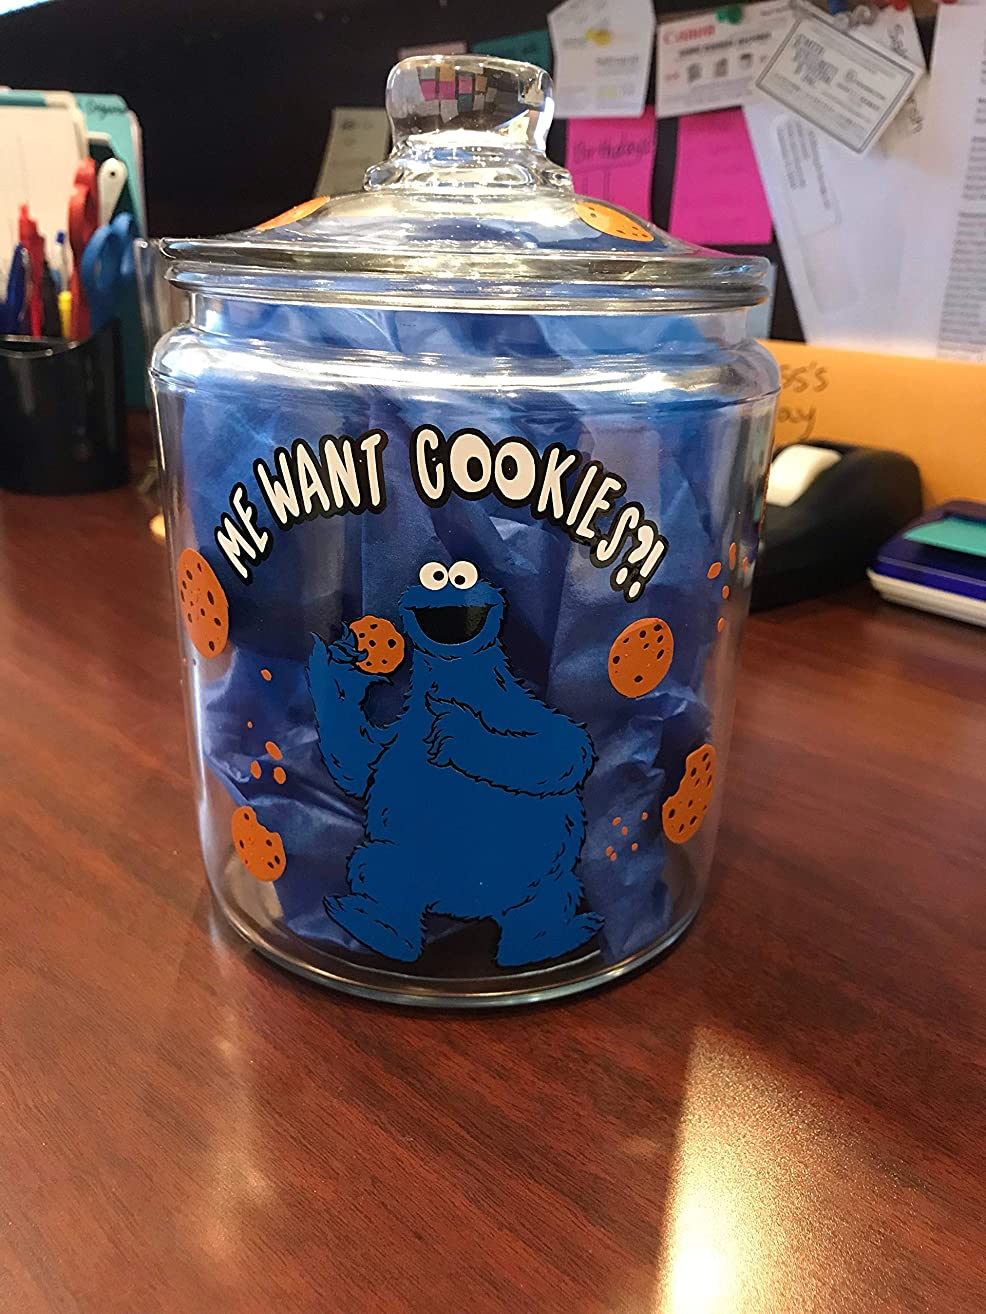 Cookie Jar Vinyl Decal, DIY cookie jar decor comes with Cookie Monster, writing, cookies and crumbs THIS IS A DECAL ONLY